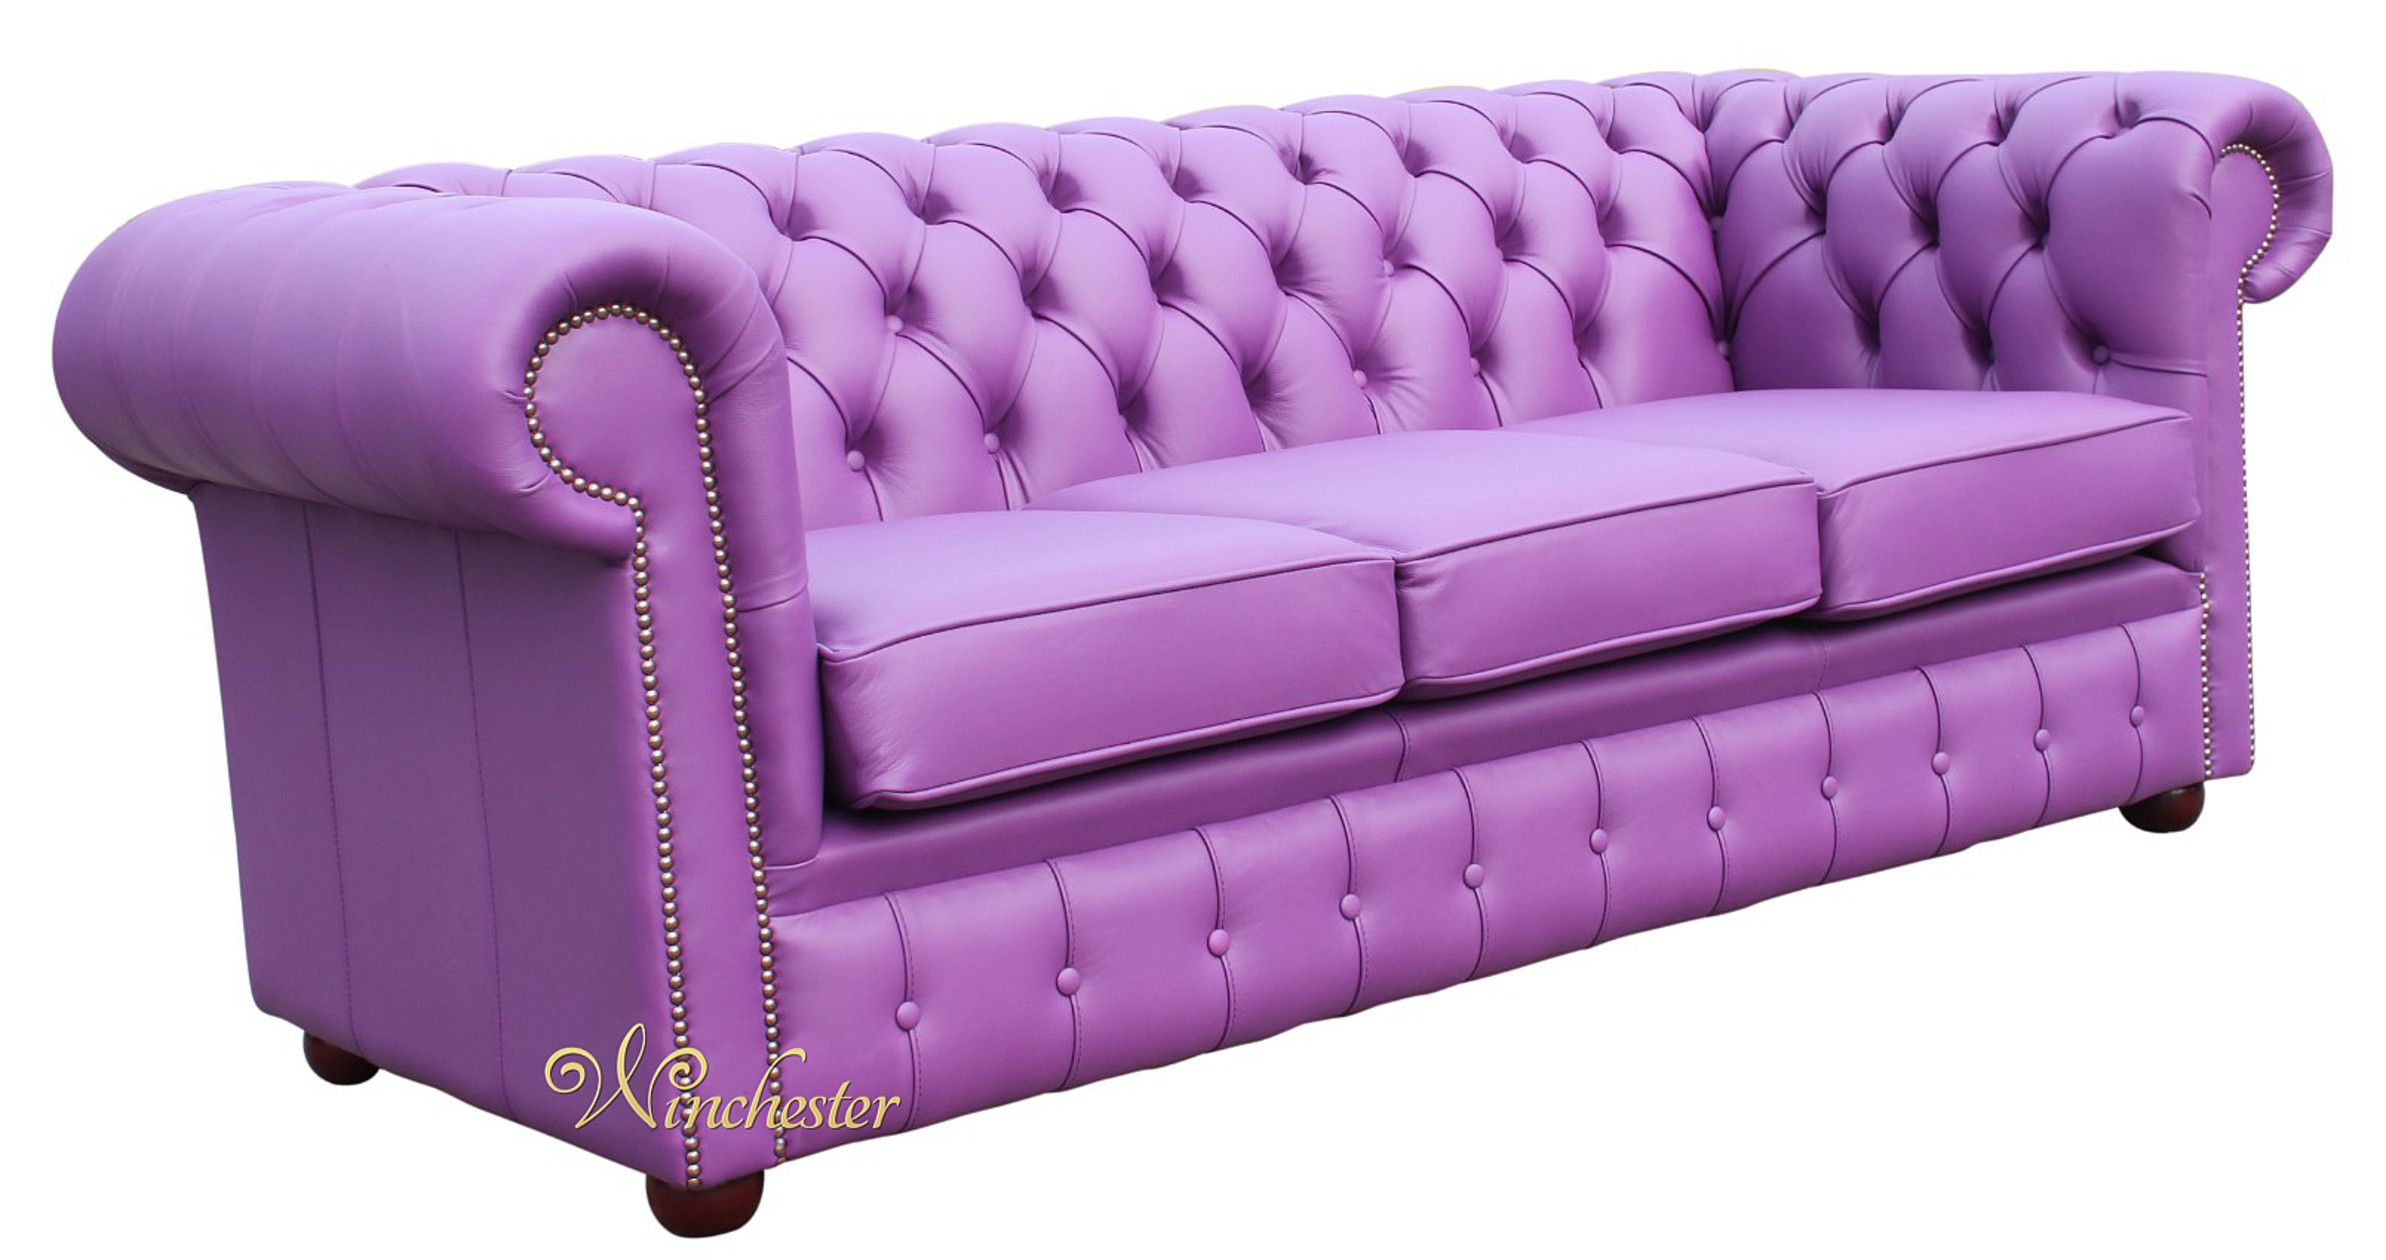 Chesterfield Leather Sofa Uk Manufactured Chesterfield Cream Leather Sofa Offer Chesterfield 3 Seater Settee Cream Leather Sofa Offer Sofa